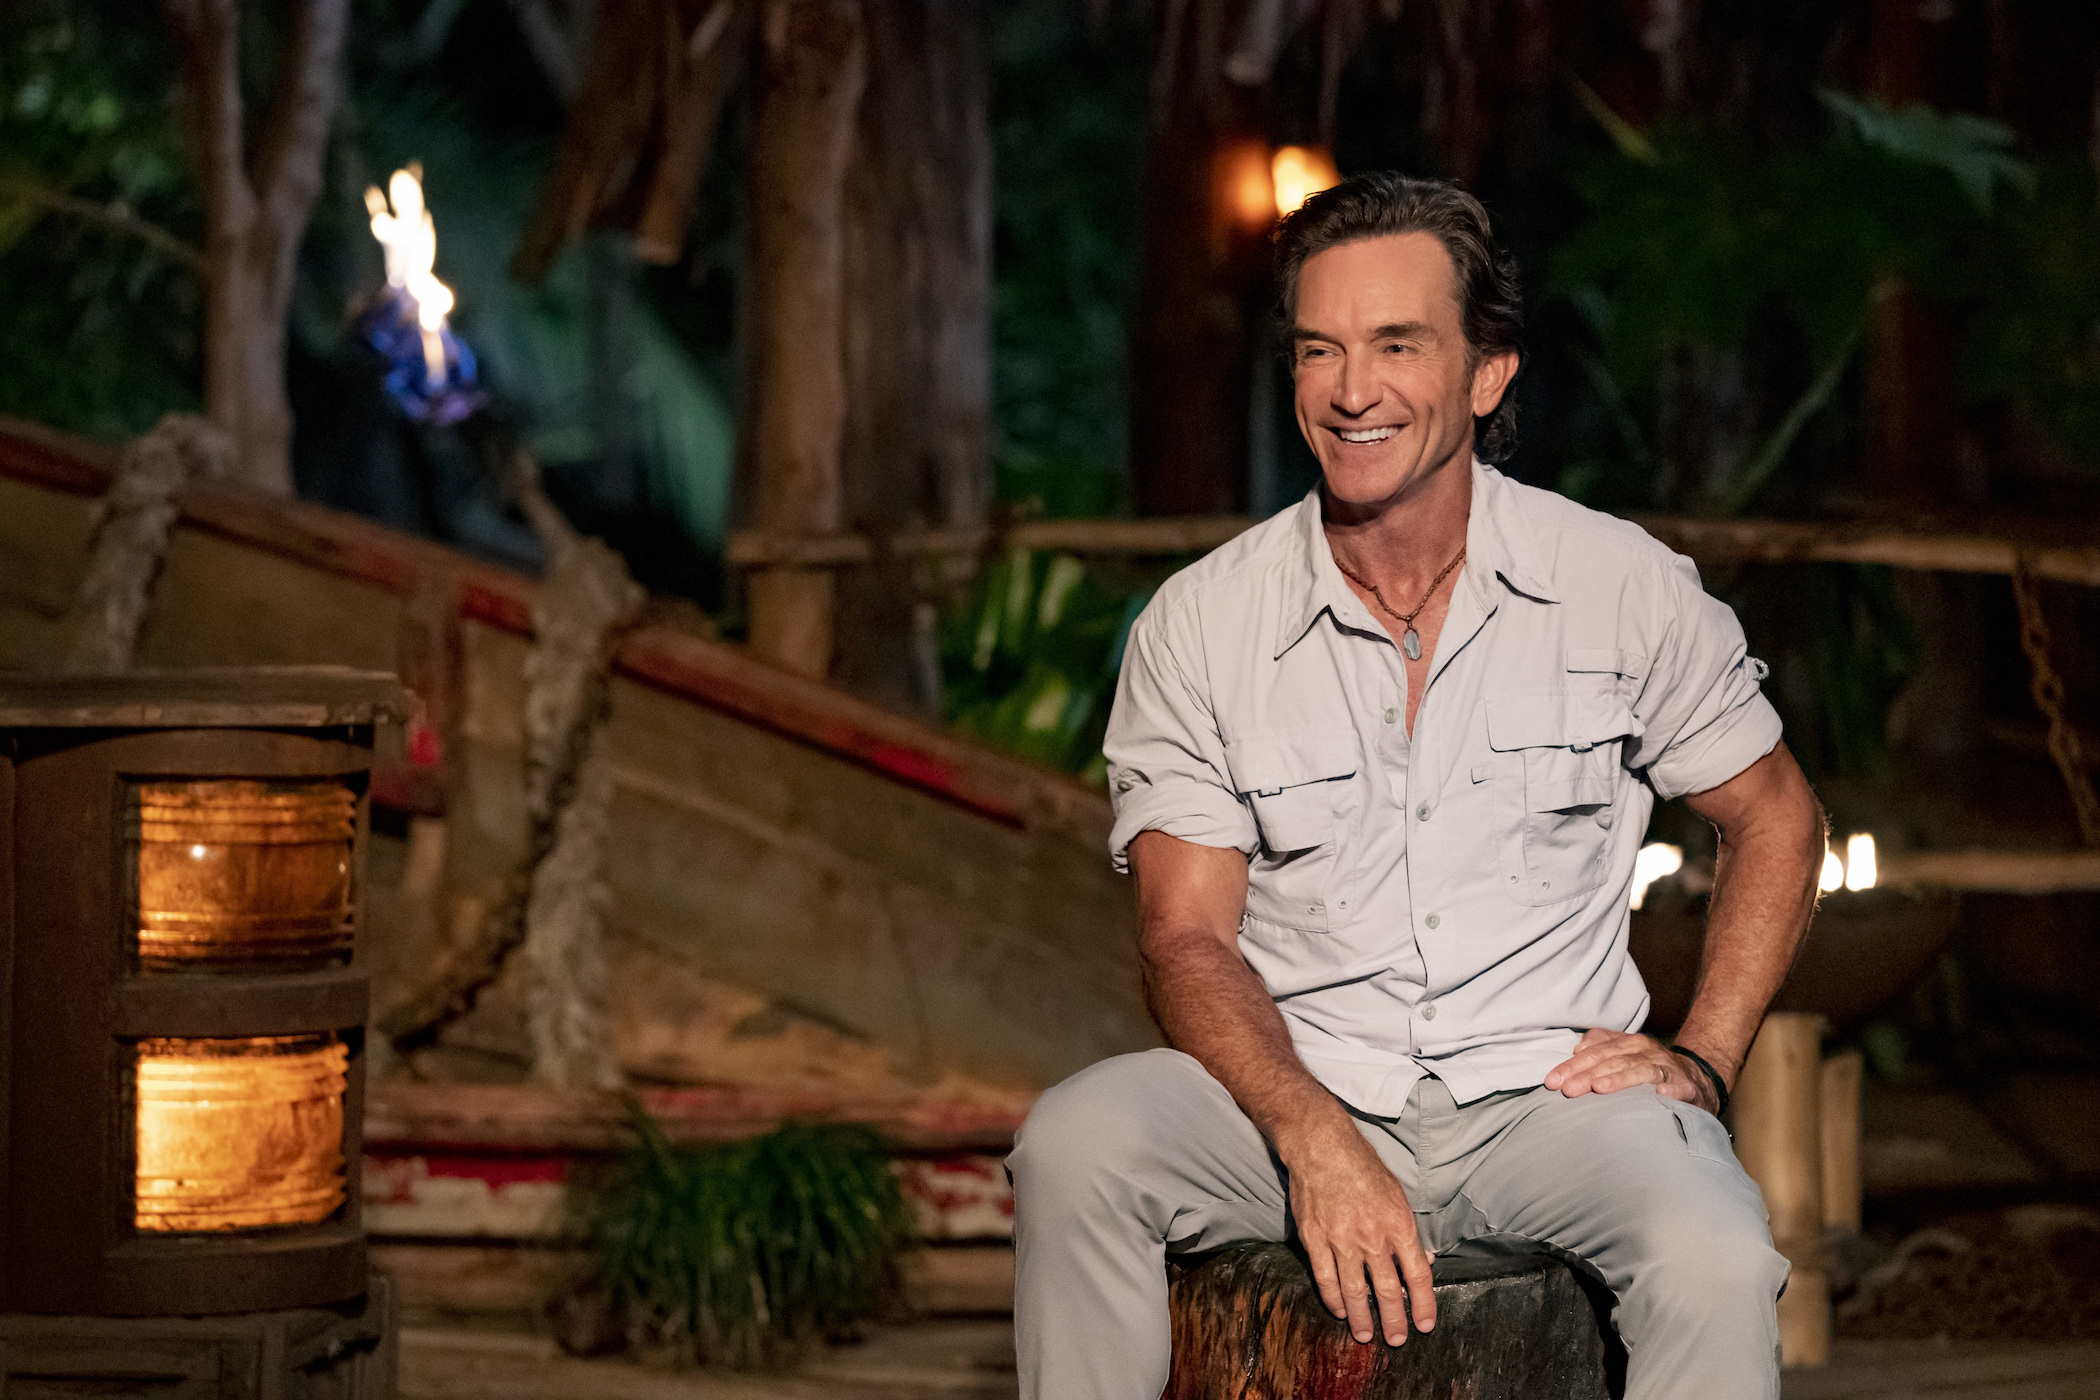 'Survivor 41' Features 3 Ways for Viewers to Play Along at Home